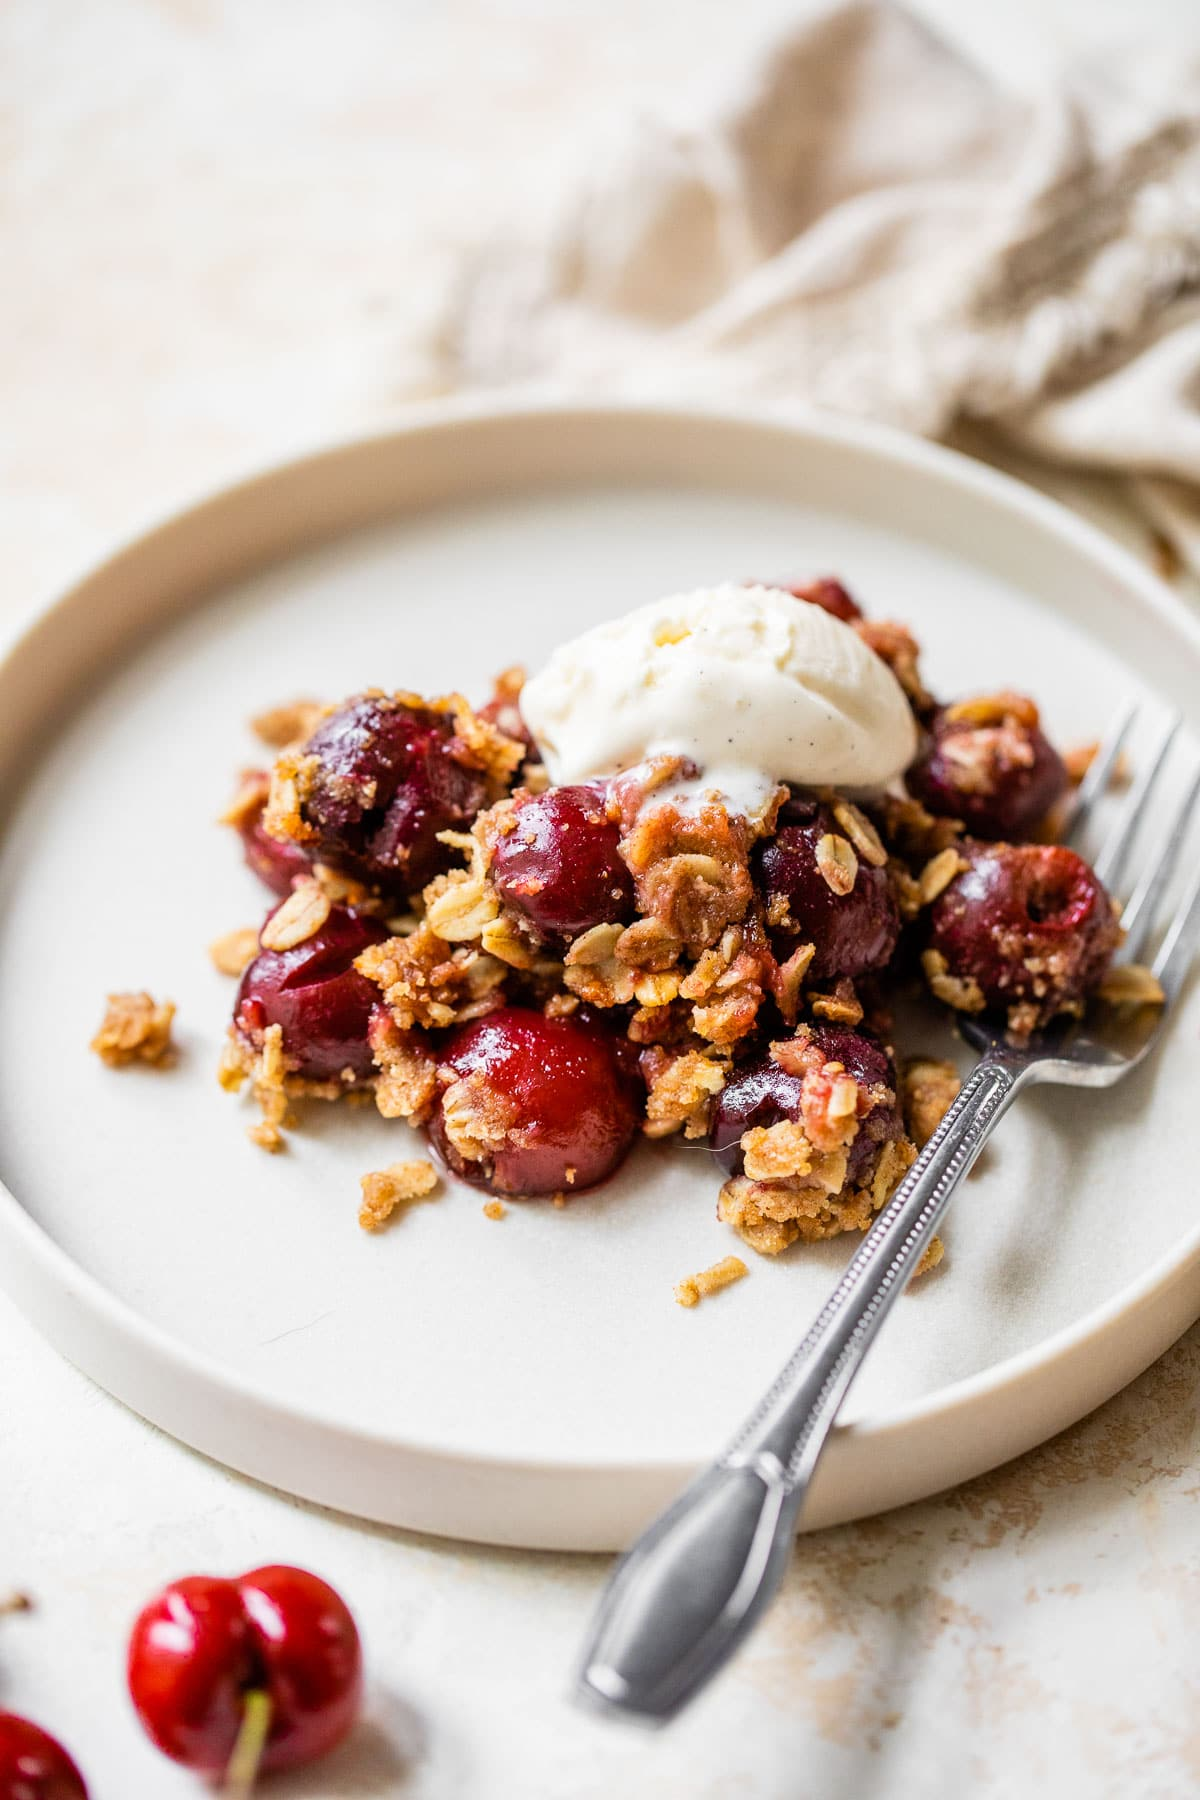 Freshly baked old-fashioned cherry crisp on a plate with a spoon and vanilla ice cream melting on top